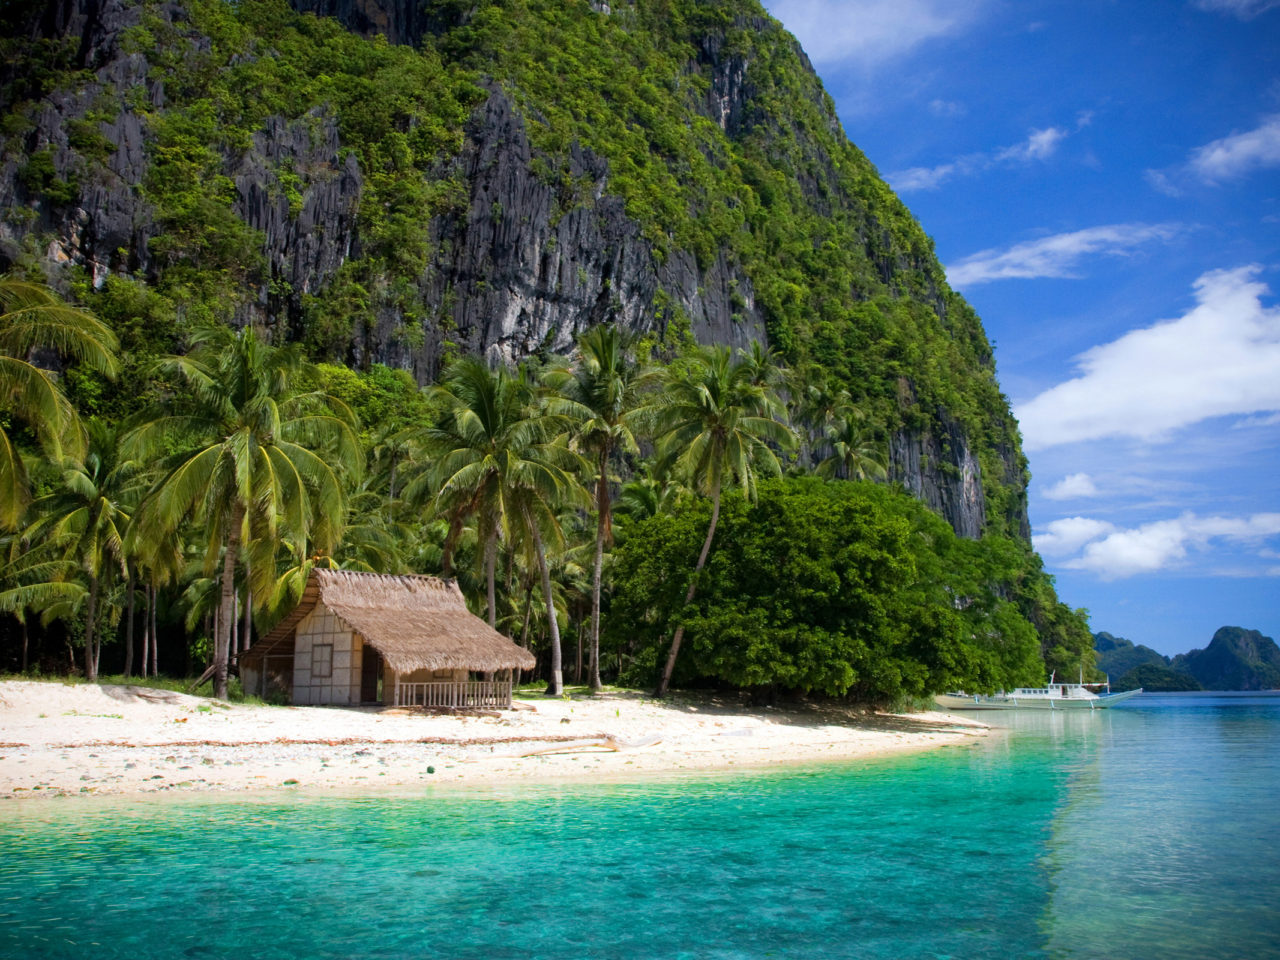 Best Pc Wallpapers Hd Cars Bacuit Bay El Nido Palawan Philippines Islands Lagoons